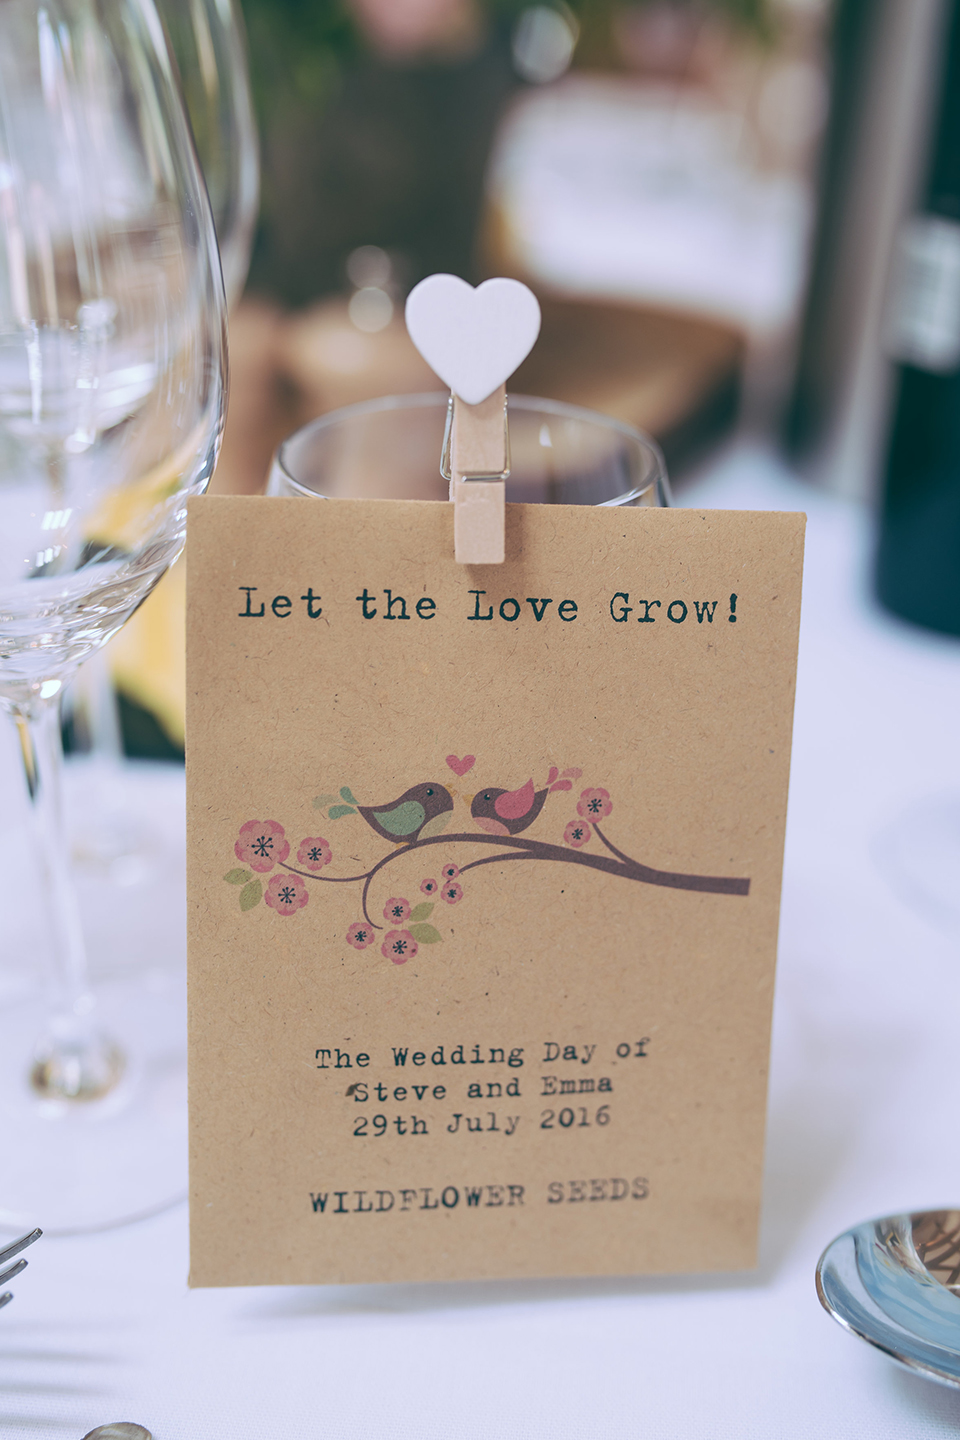 For their summer wedding at Bassmead Manor Barns the couple gave guests flower seeds as wedding favours